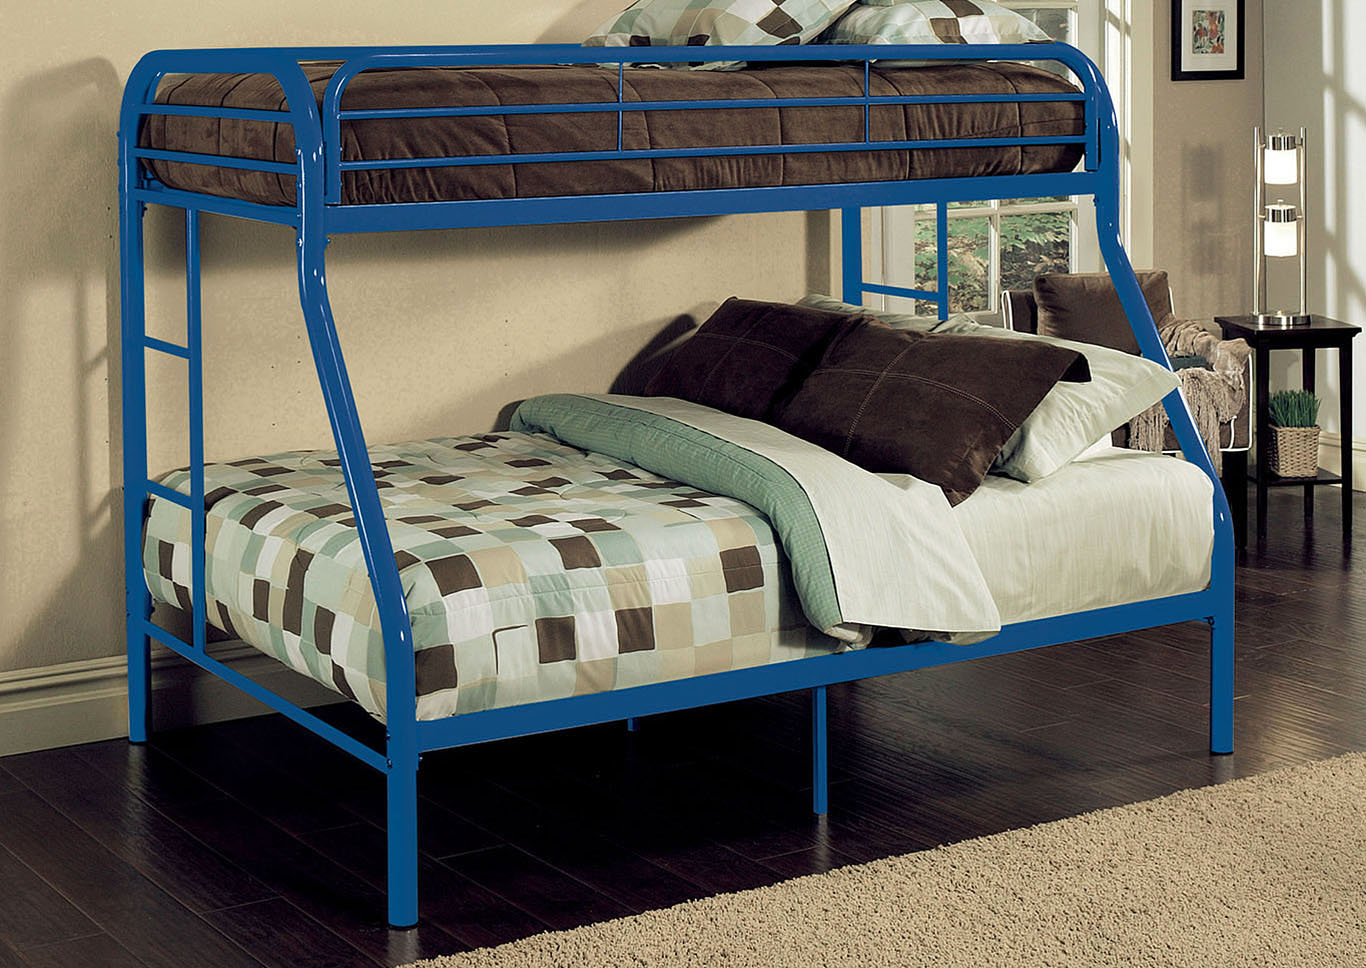 Tritan Blue Twin/Full Bunk Bed,Acme